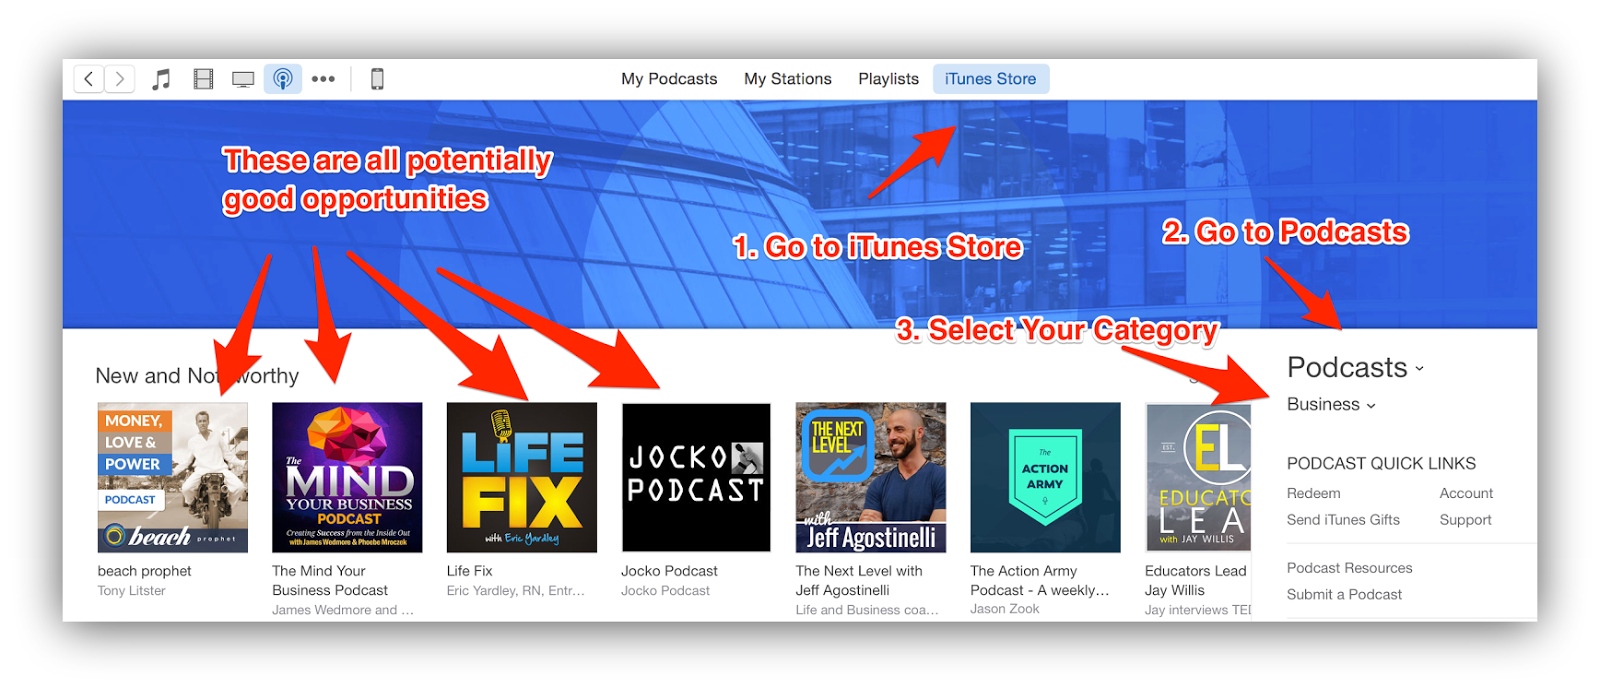 relevant new and noteworthy podcasts itunes